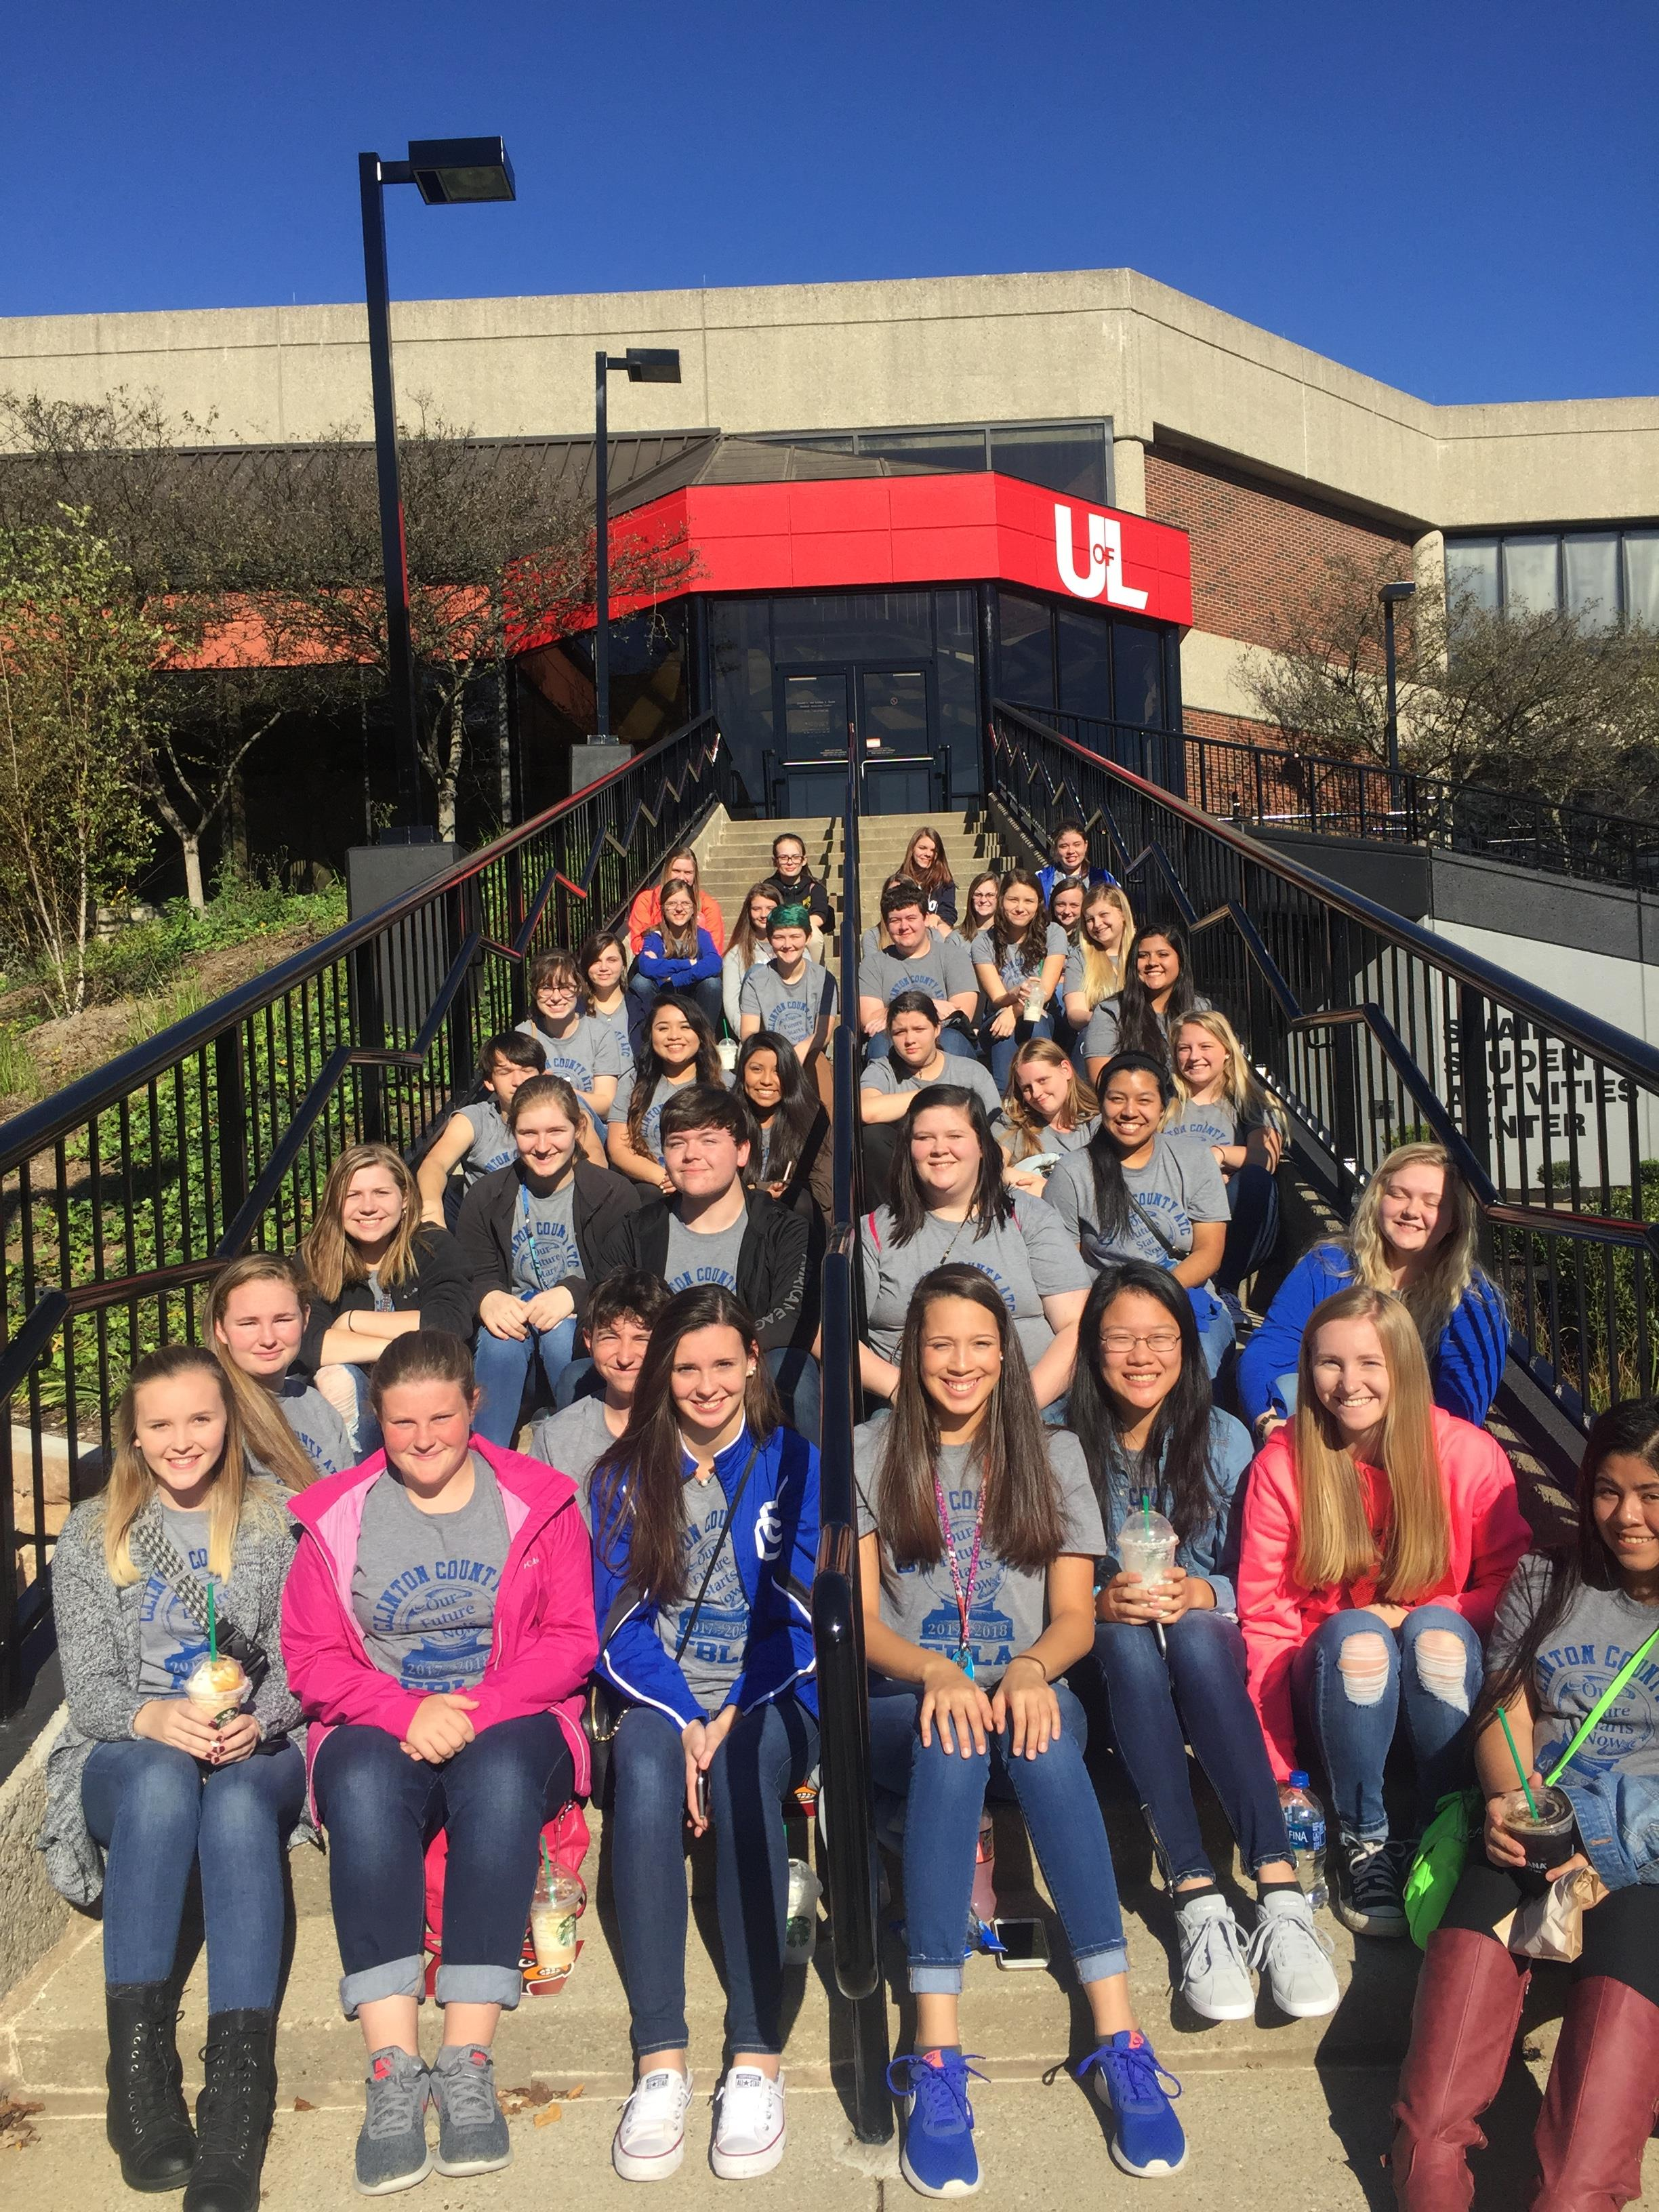 On Thursday, October 26, 2017, 38 members of the Clinton County Area Technology Center FBLA Chapter traveled to Louisville, KY, for a visit to Breakout Games and a campus tour of the University of Louisville.